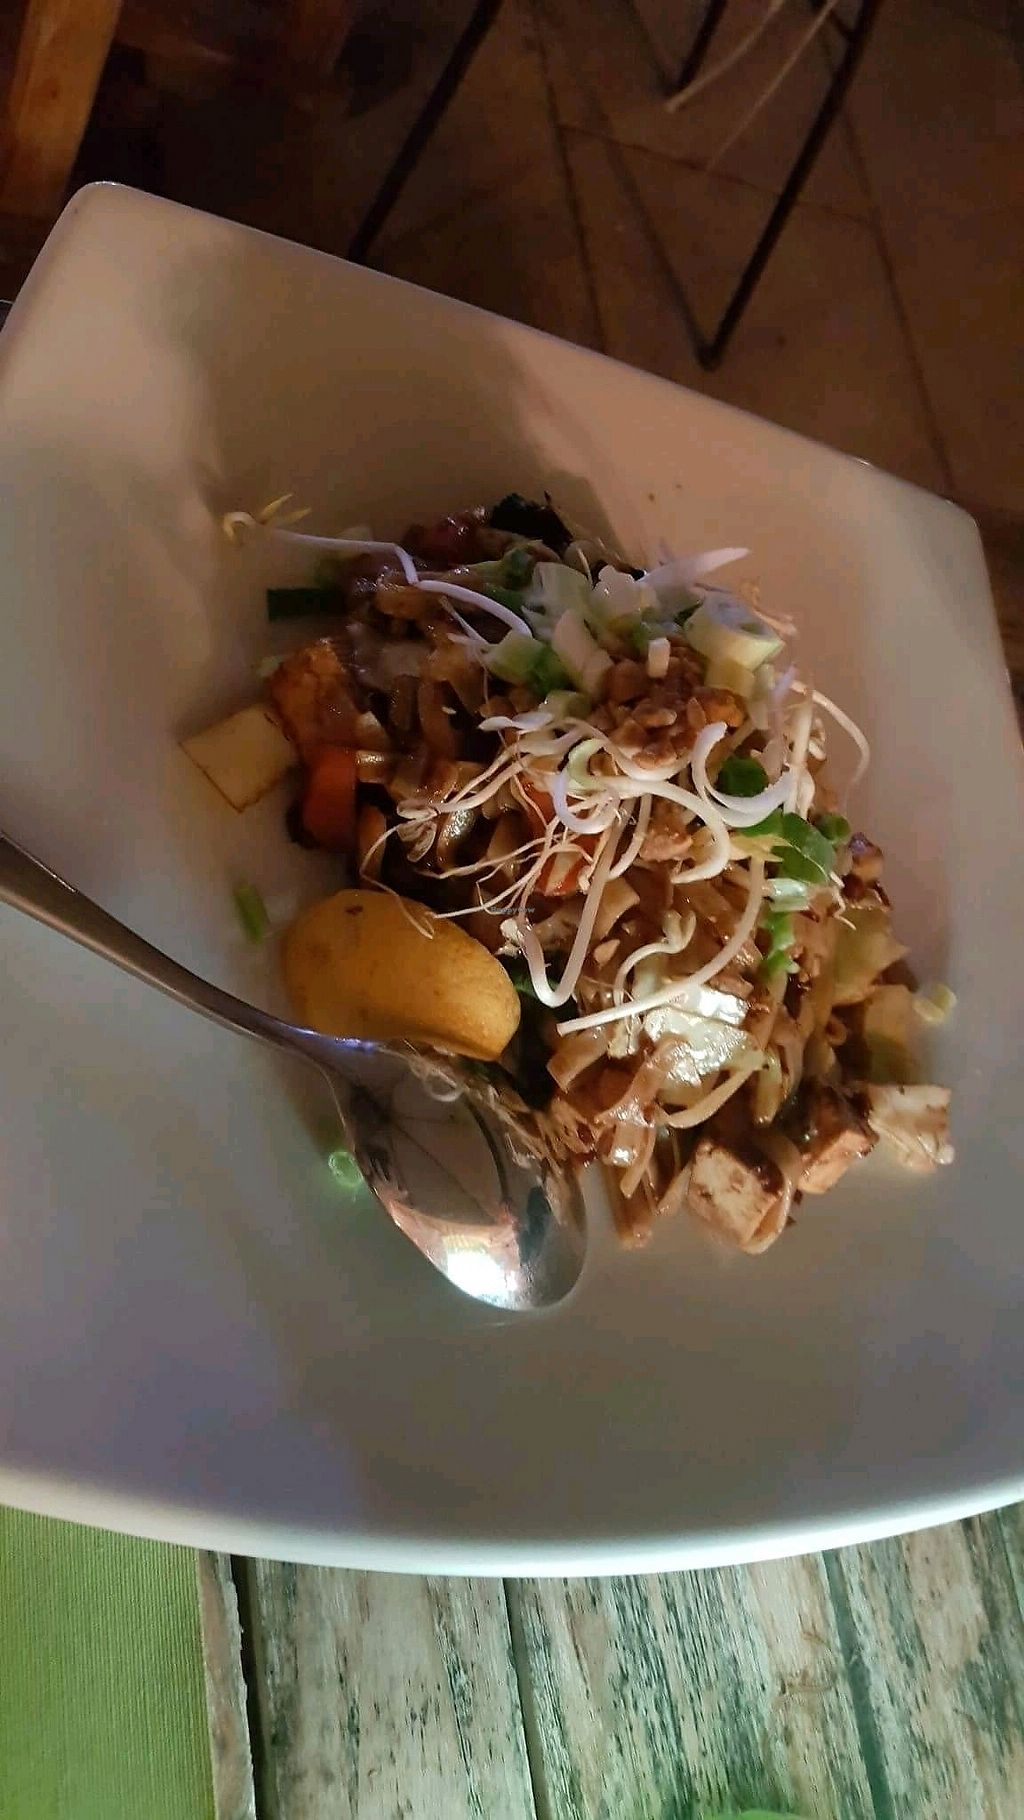 """Photo of Spice  by <a href=""""/members/profile/NatachaDeSousa"""">NatachaDeSousa</a> <br/>noodles, super tasty <br/> November 8, 2017  - <a href='/contact/abuse/image/97514/323326'>Report</a>"""